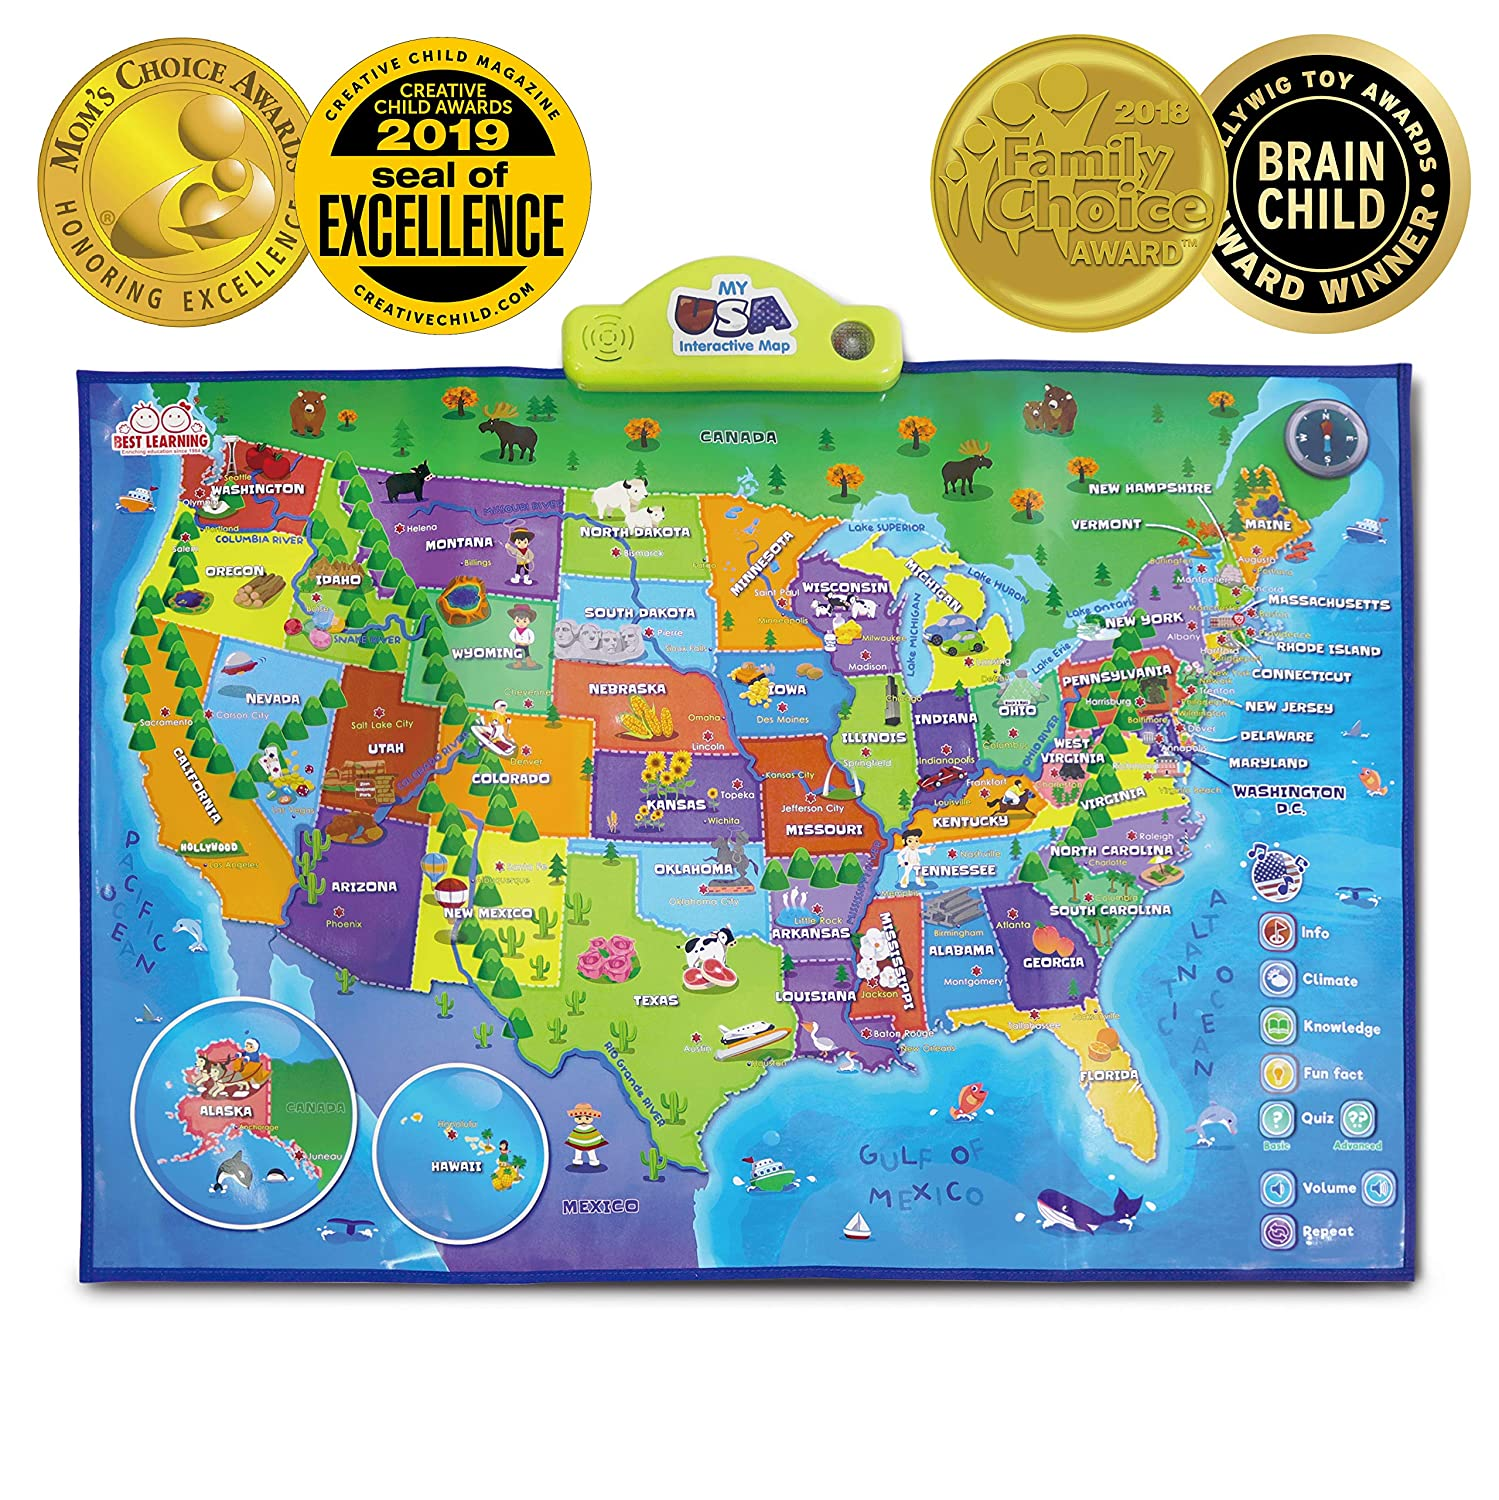 Interactive Map Of Georgia.Best Learning I Poster My Usa Interactive Map Educational Talking Toy For Boys And Girls Ages 5 To 12 Years Old Ideal Gift For Kids